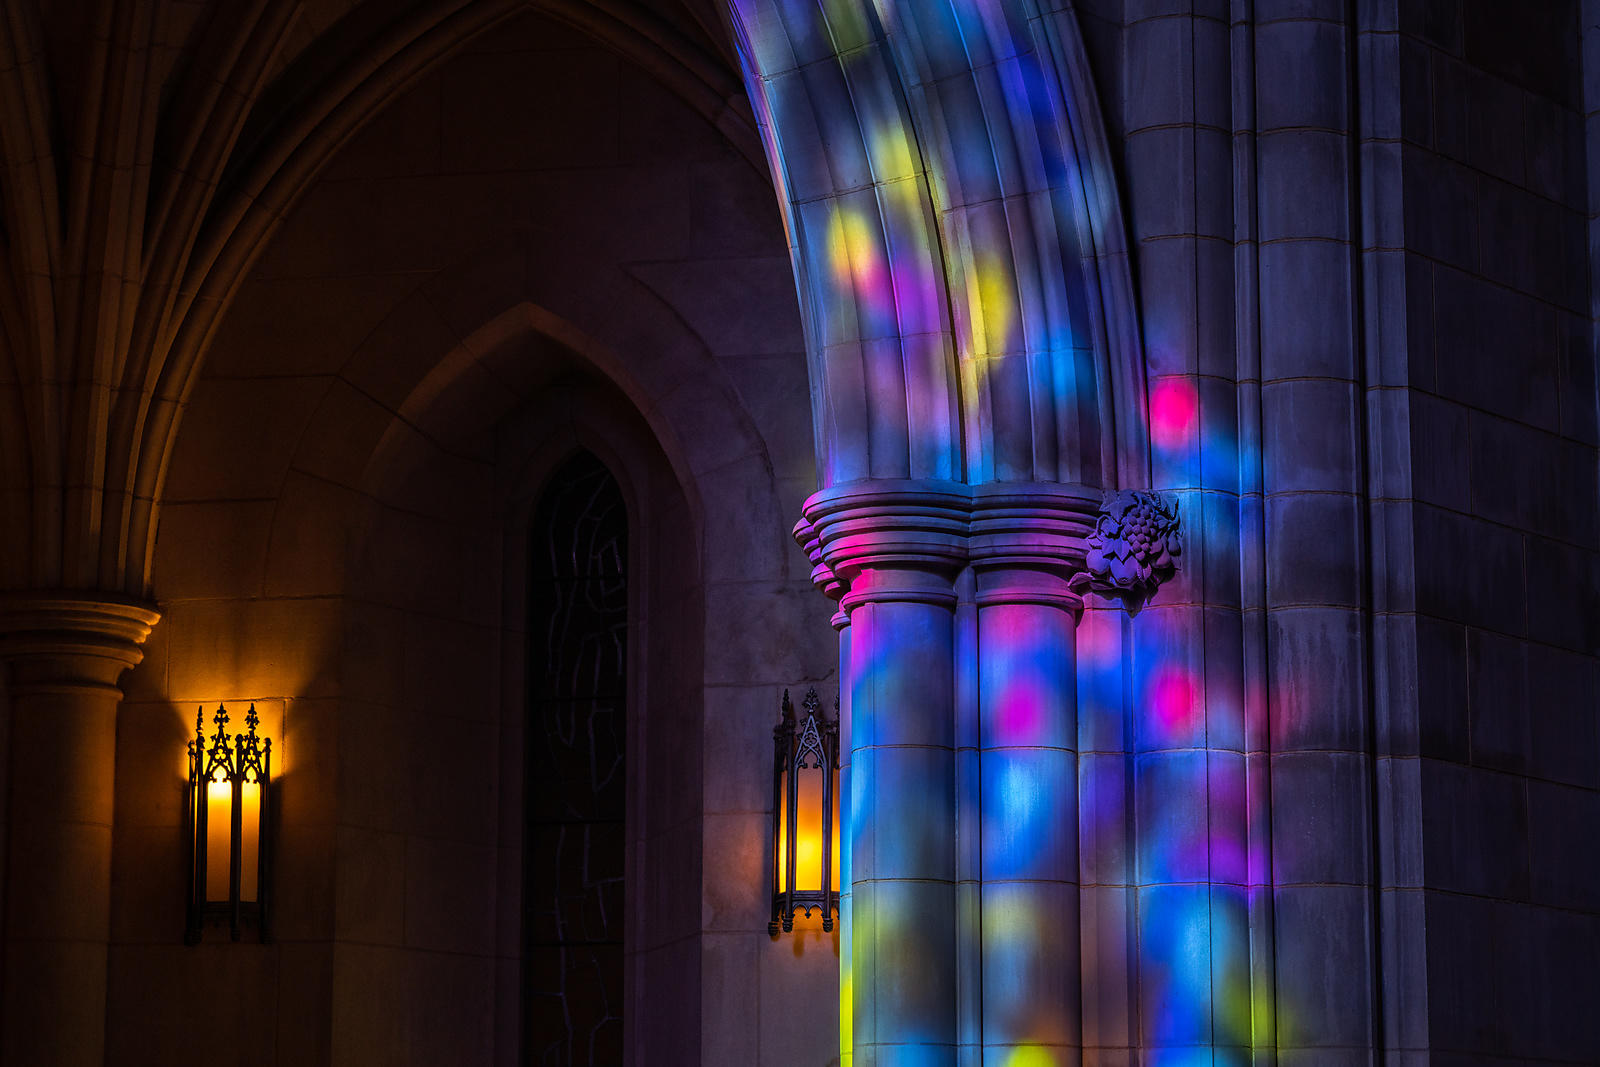 Stained Glass Projections in the Apse